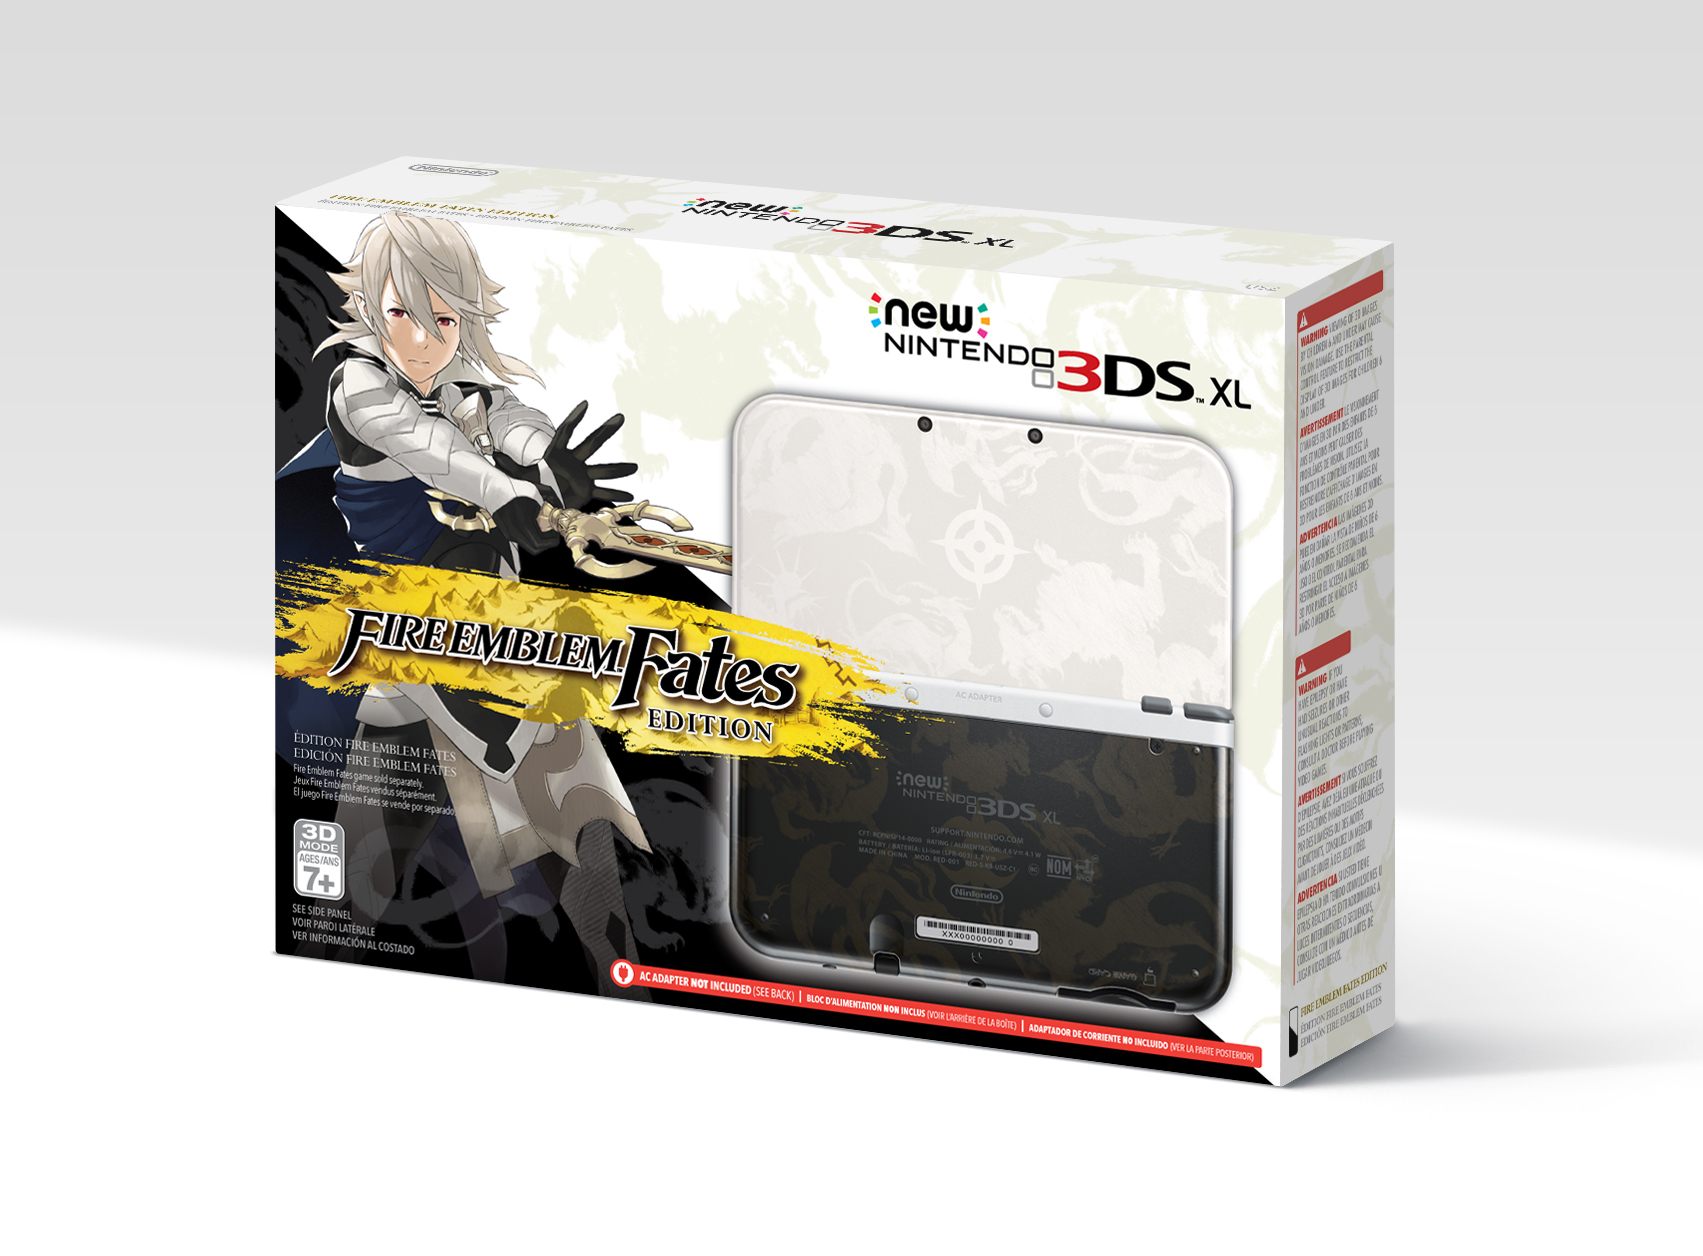 Fire Emblem Fates Getting Weekly Map DLC Special New DS XL - Fire emblem fates map pack 3 us